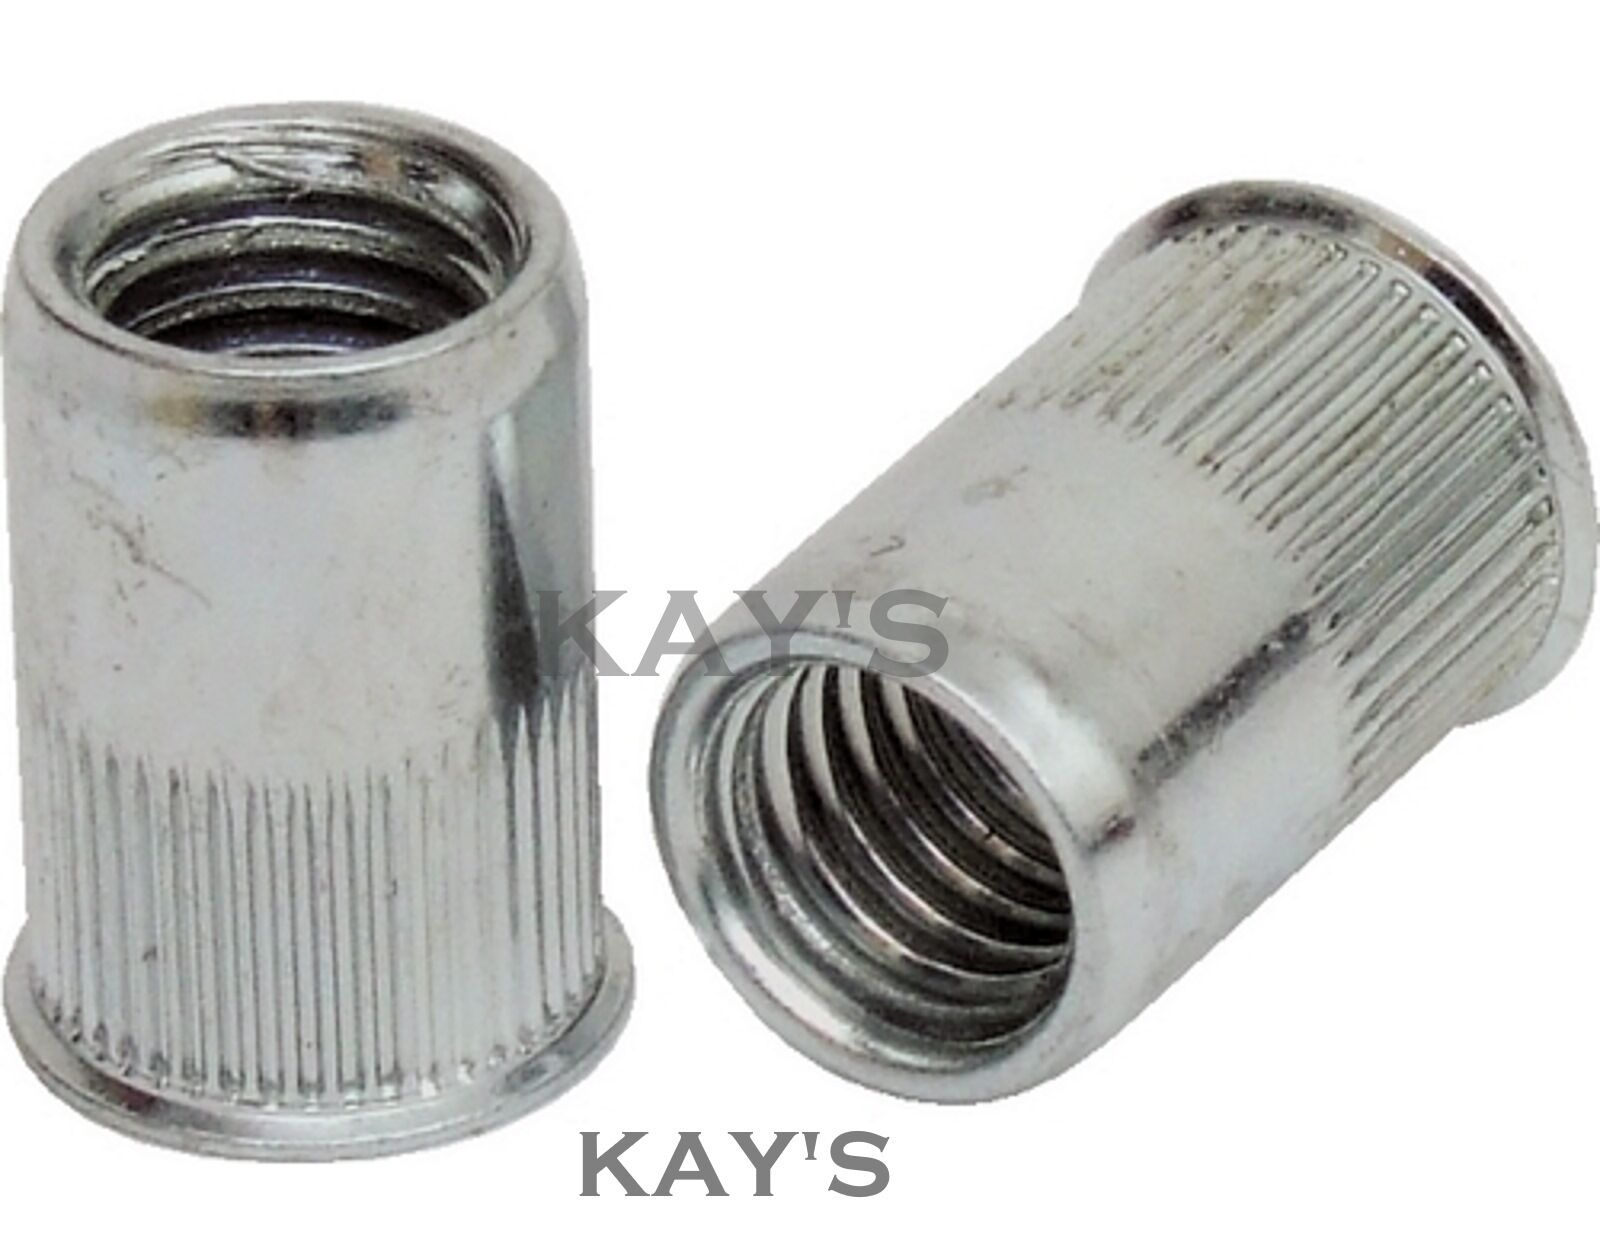 STAINLESS STEEL COUNTERSUNK RIVNUTS RIVET NUTS THREADED INSERTS M4 M5 M6 M8 M10